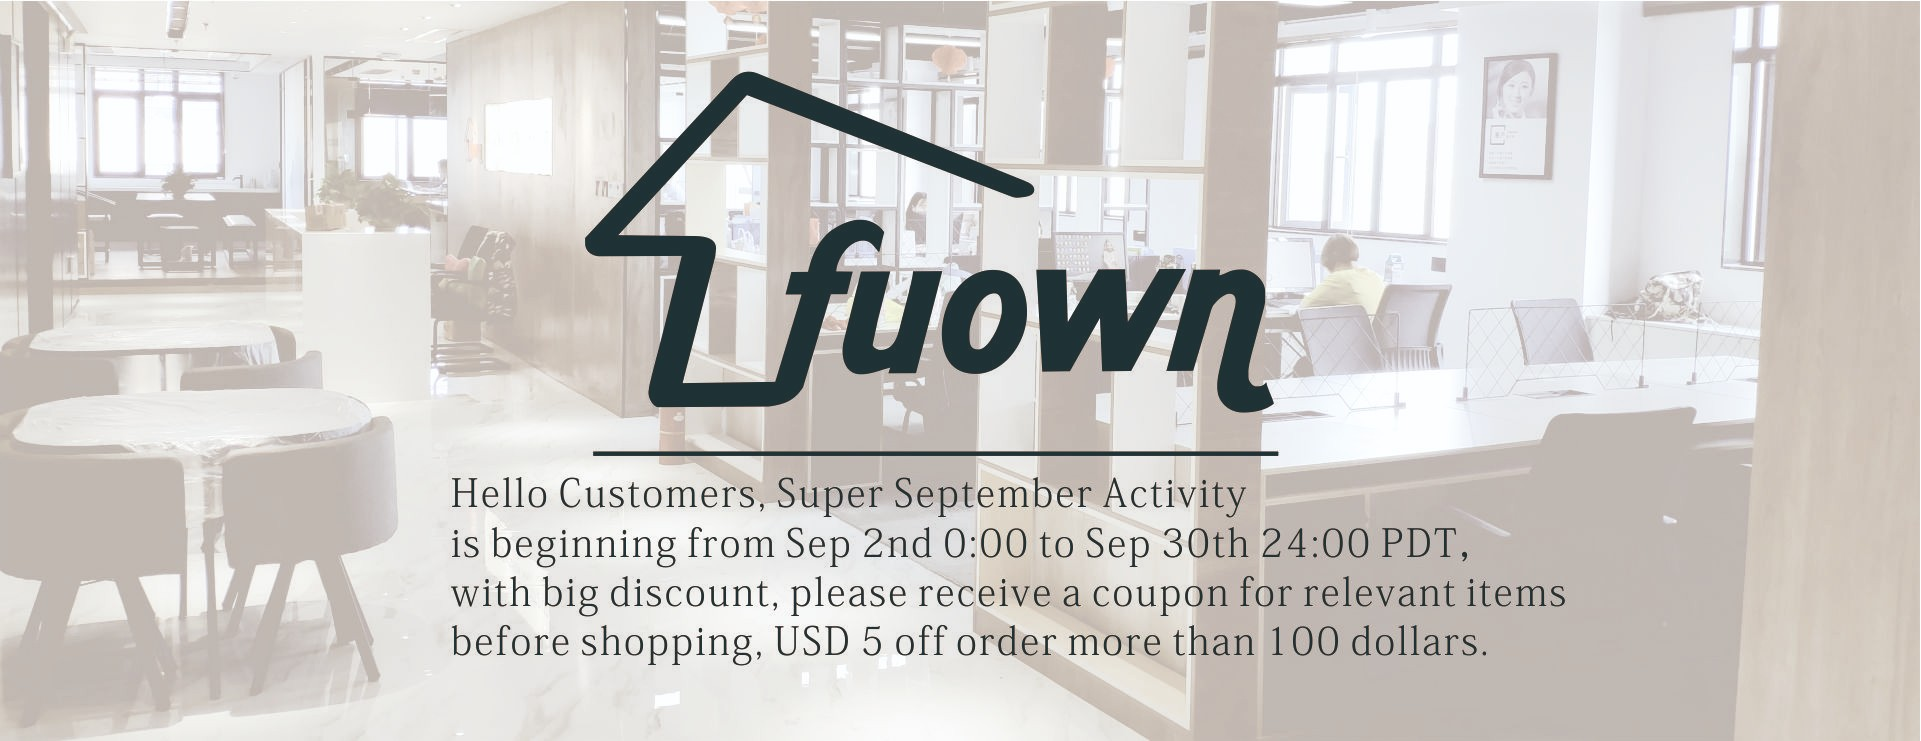 fuown